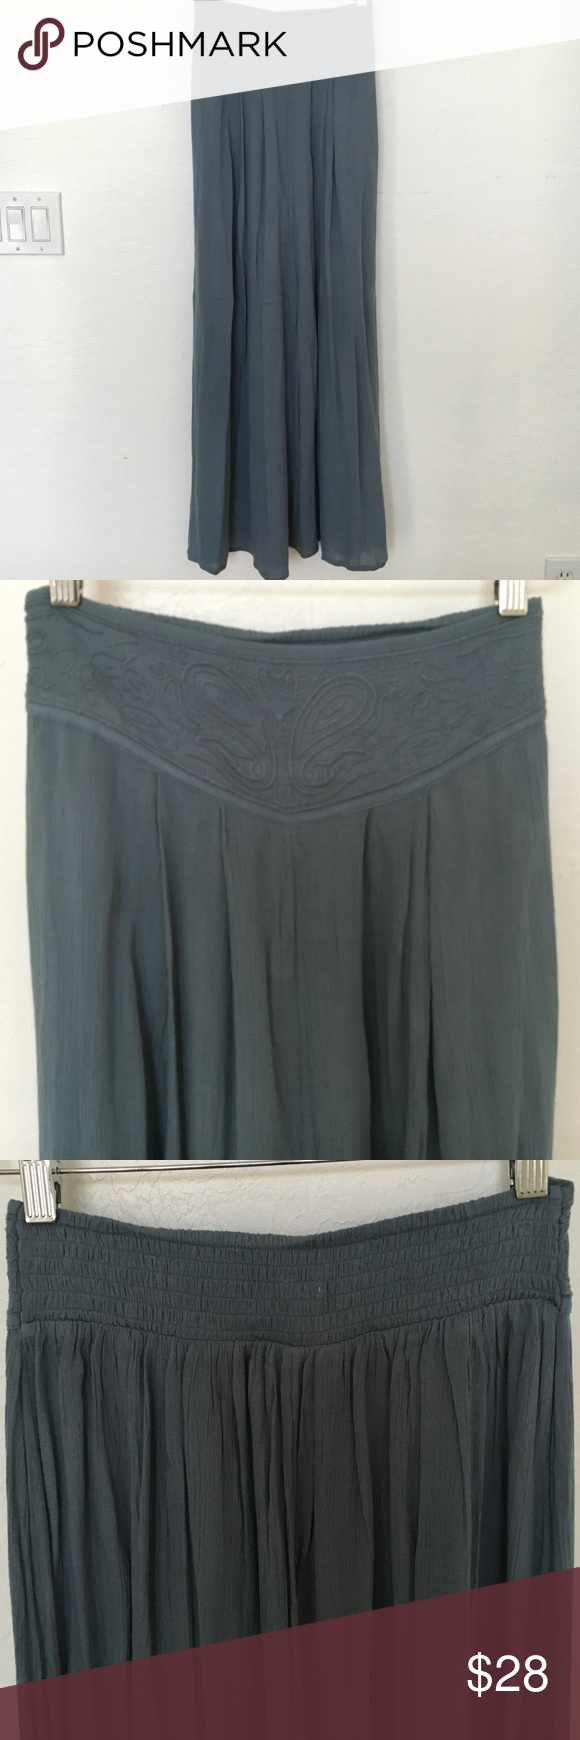 Sooo cute! Long unique skirt! This skirt has never been worn. High waisted and elastic back. Unique detail and beautiful blue-grey color. Urban Outfitters Skirts Maxi